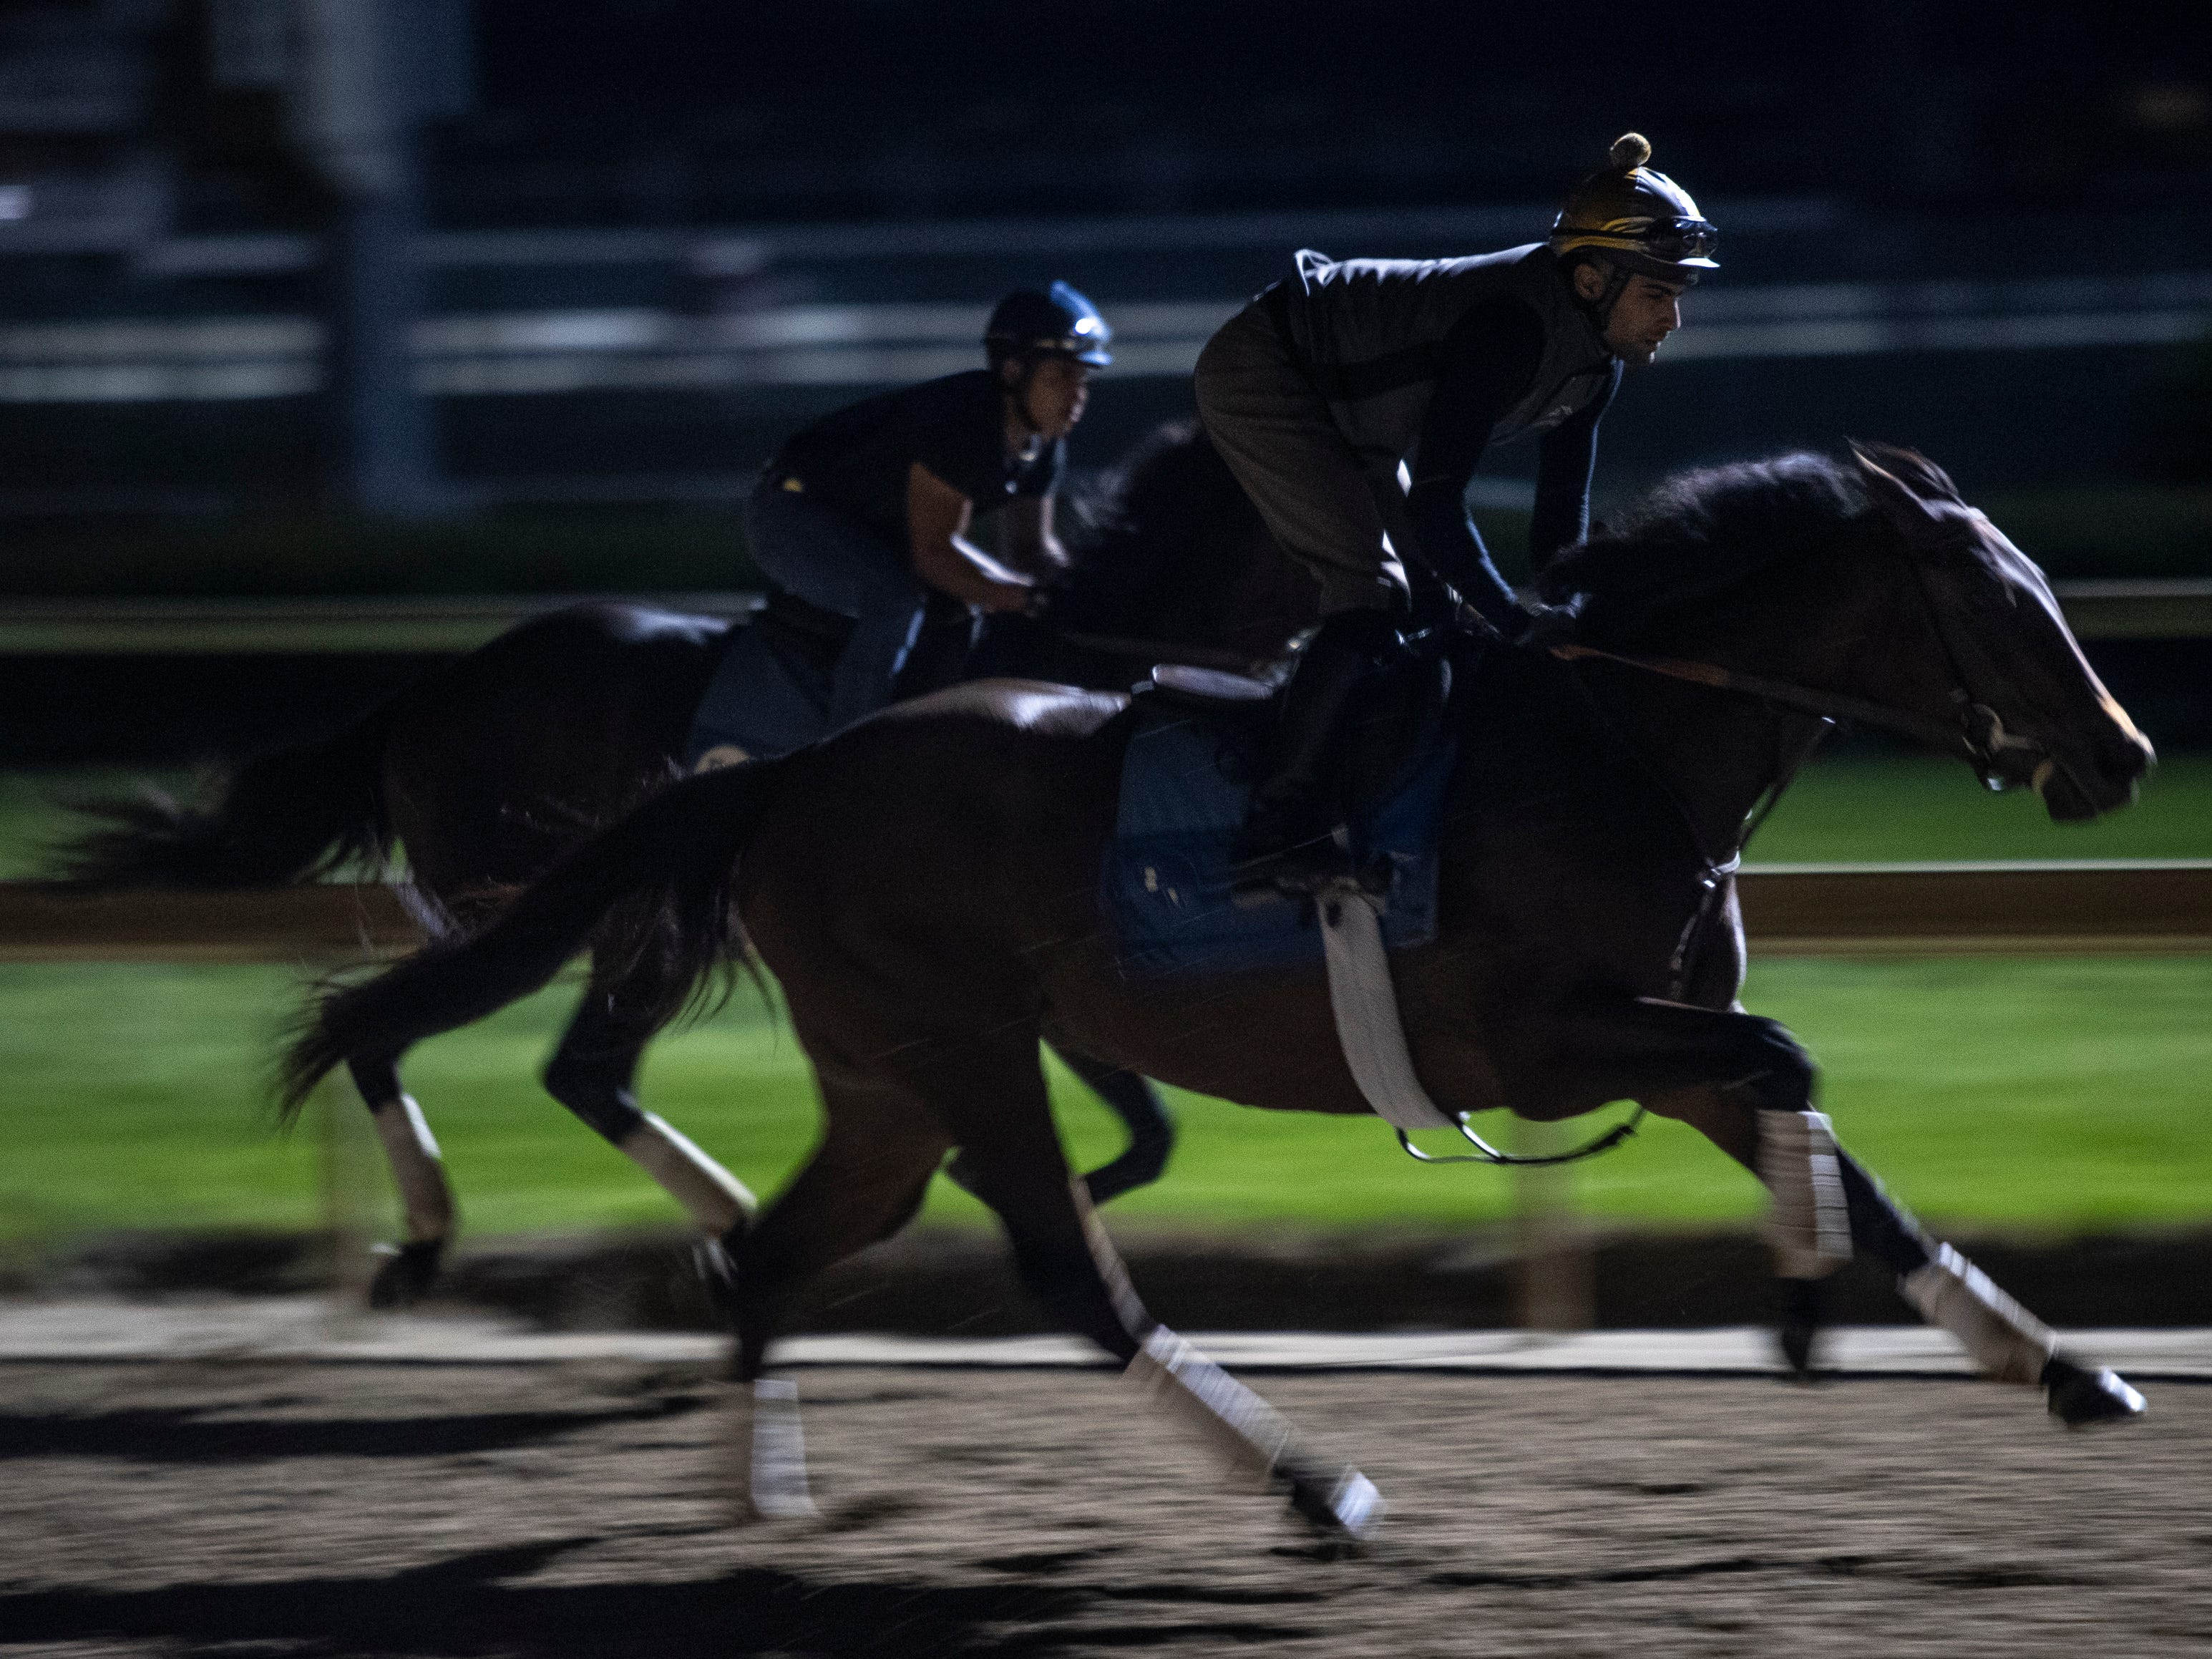 Horses train before sunrise at Churchill Downs. April 23, 2019.